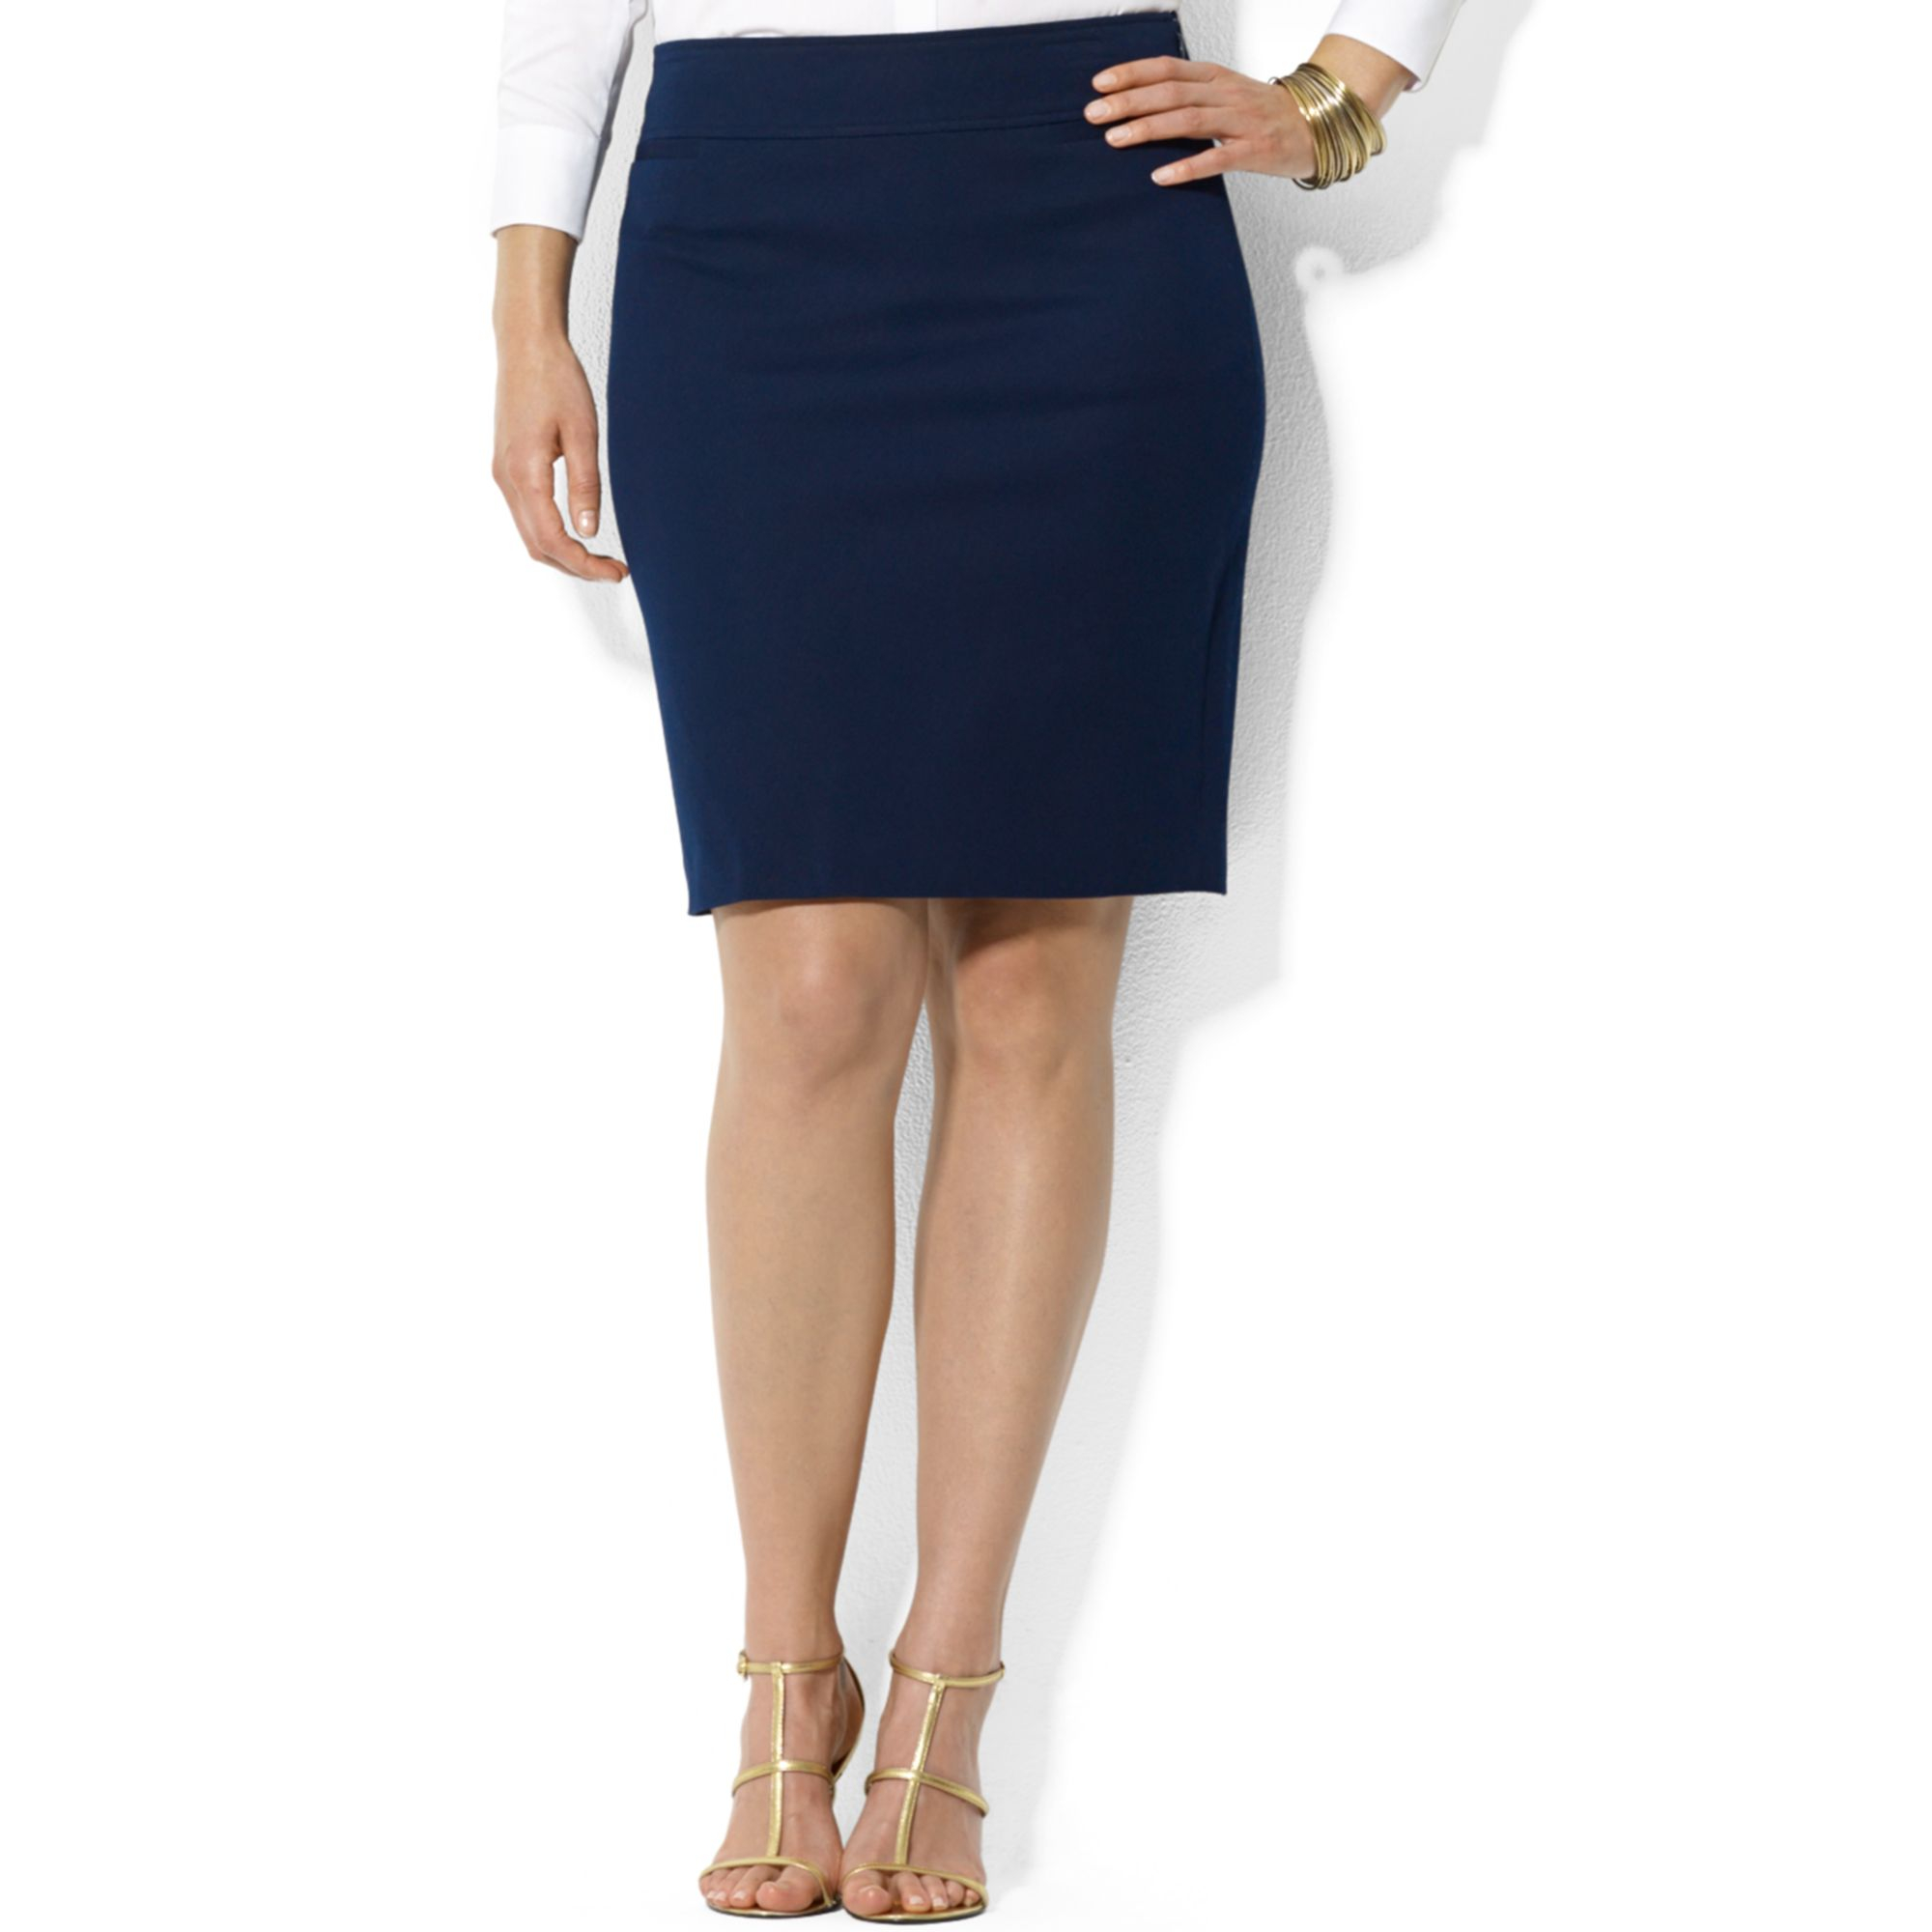 Create stylish new outfits with plus size skirts. Just a few plus size skirts can expand the potential of your wardrobe. Whether you prefer a curve-hugging pencil skirt or a belted A-line maxi, Sears has flattering designs to give you confidence in any environment.